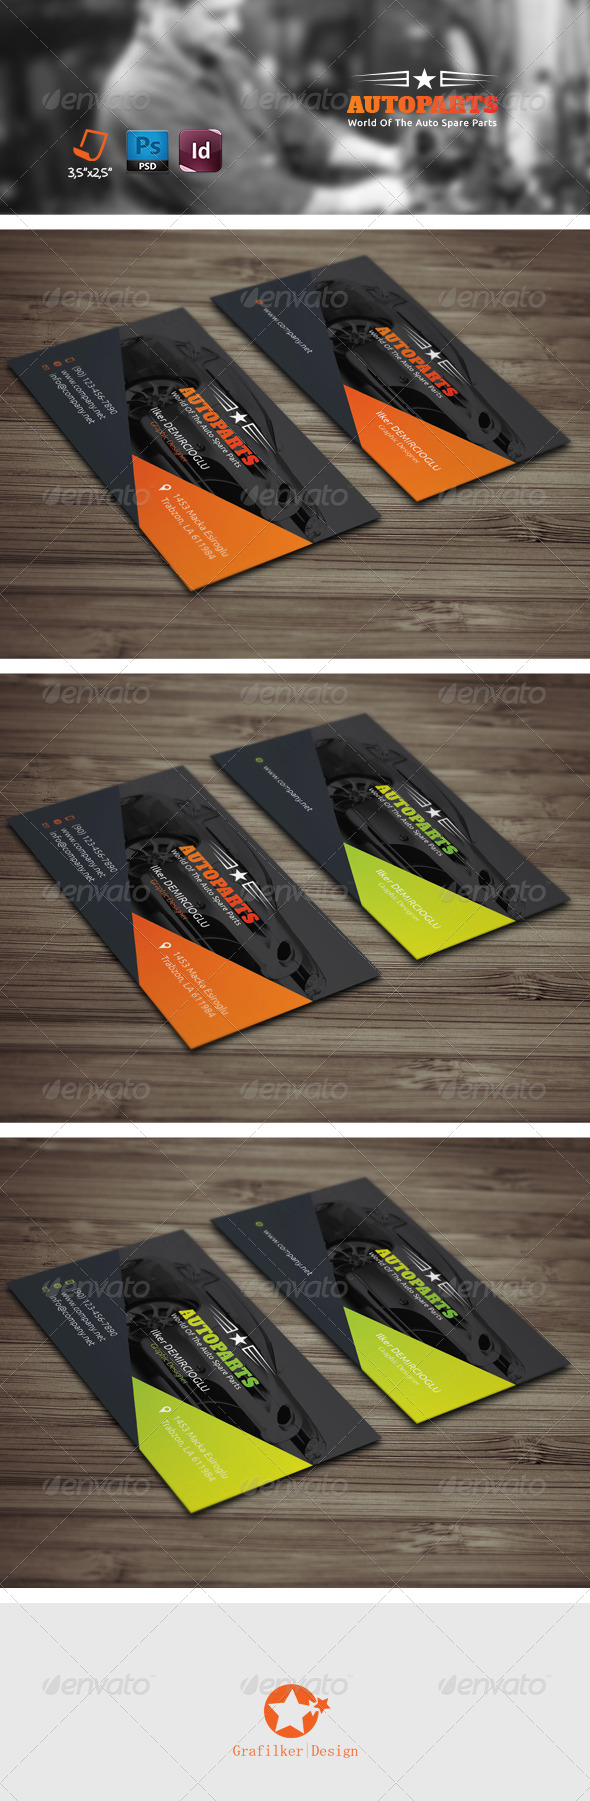 auto services business card templates by grafilker graphicriver